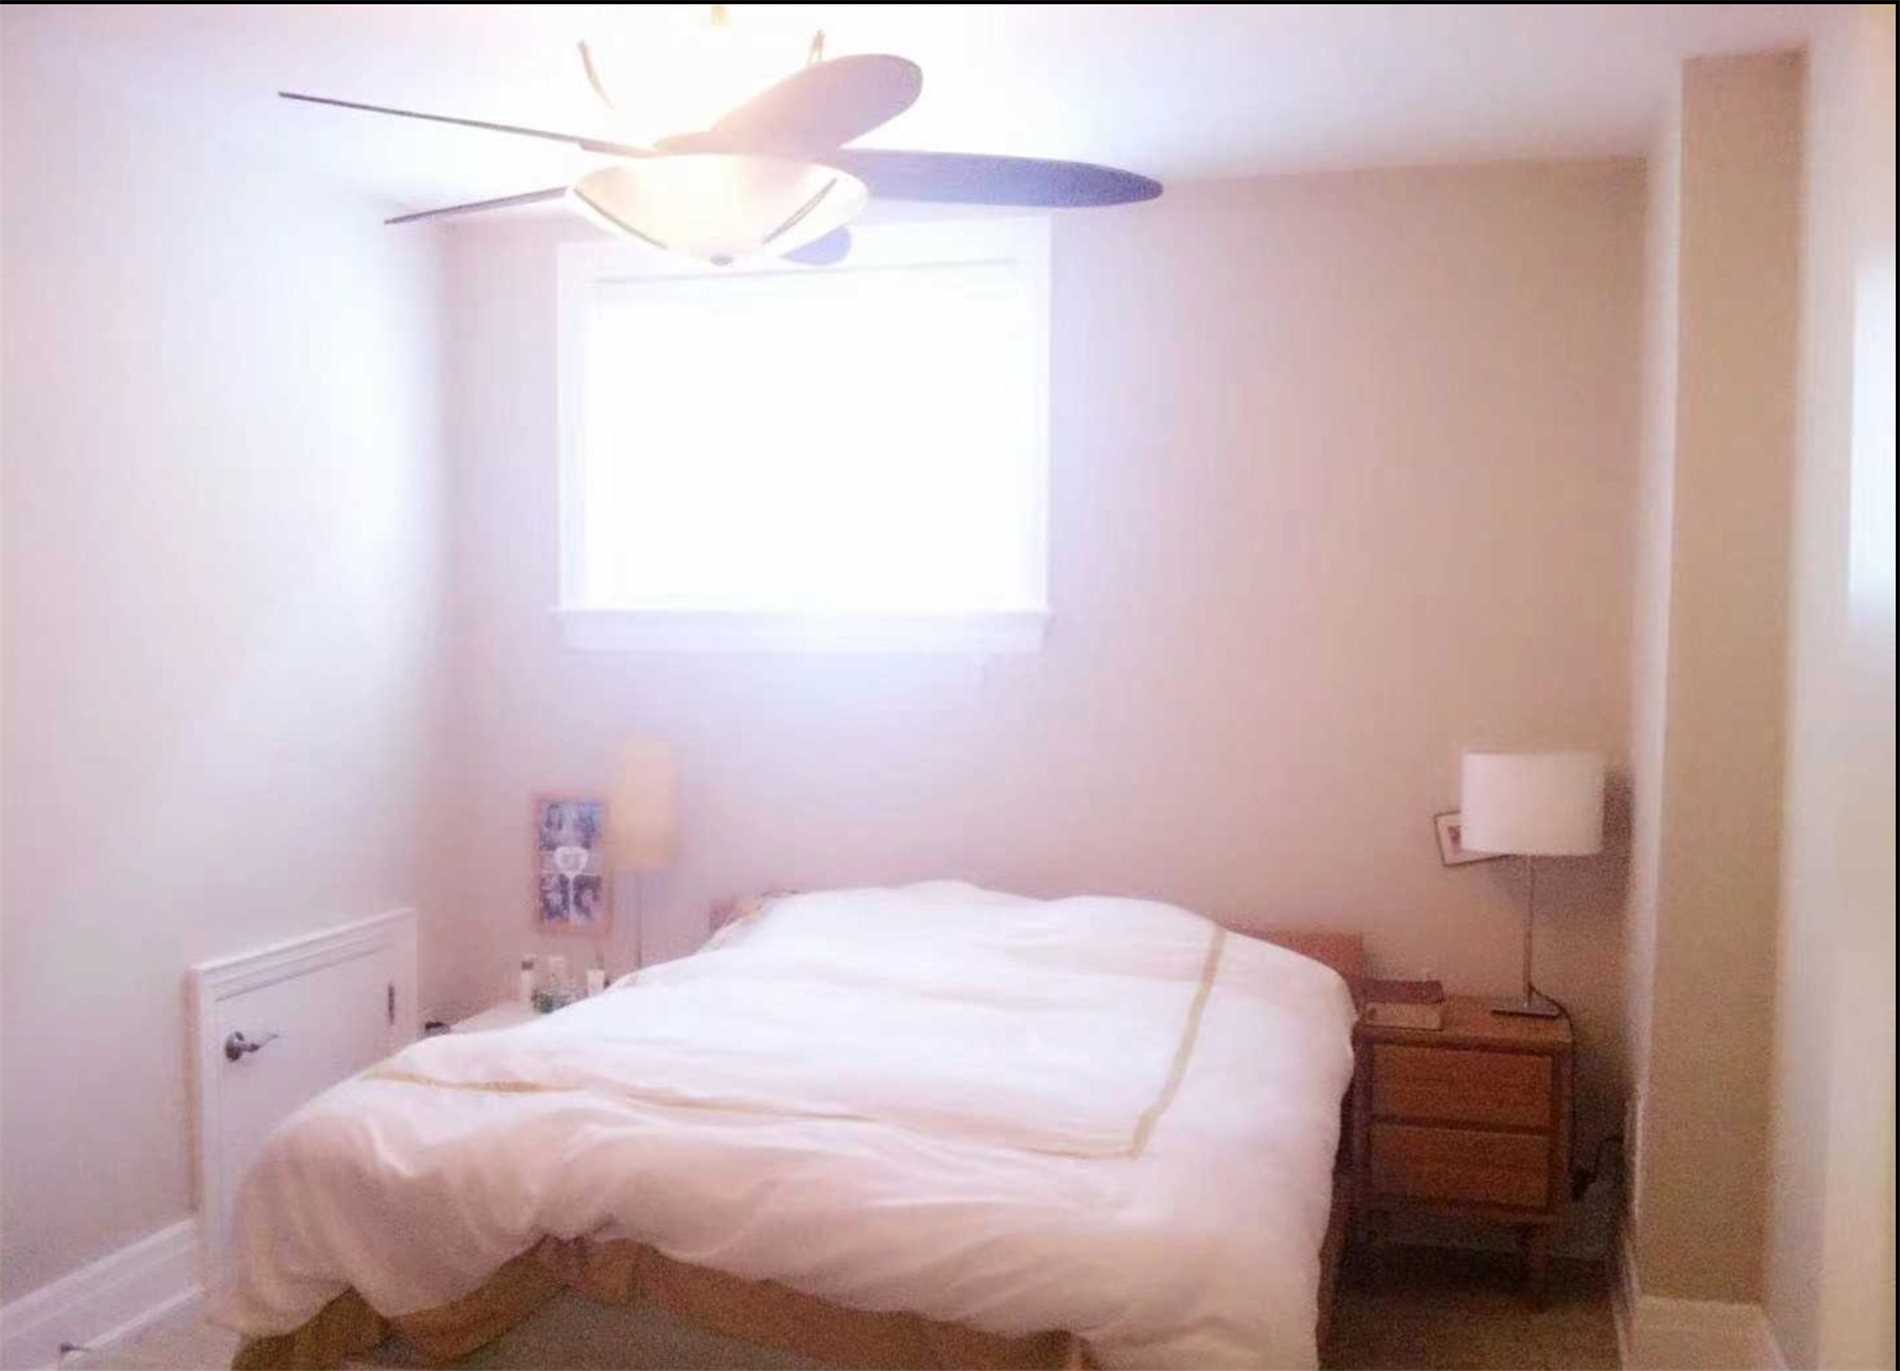 Image 3 of 7 showing inside of 1 Bedroom Detached 2-Storey for Lease at 147A Drewry Ave, Toronto M2M1E3